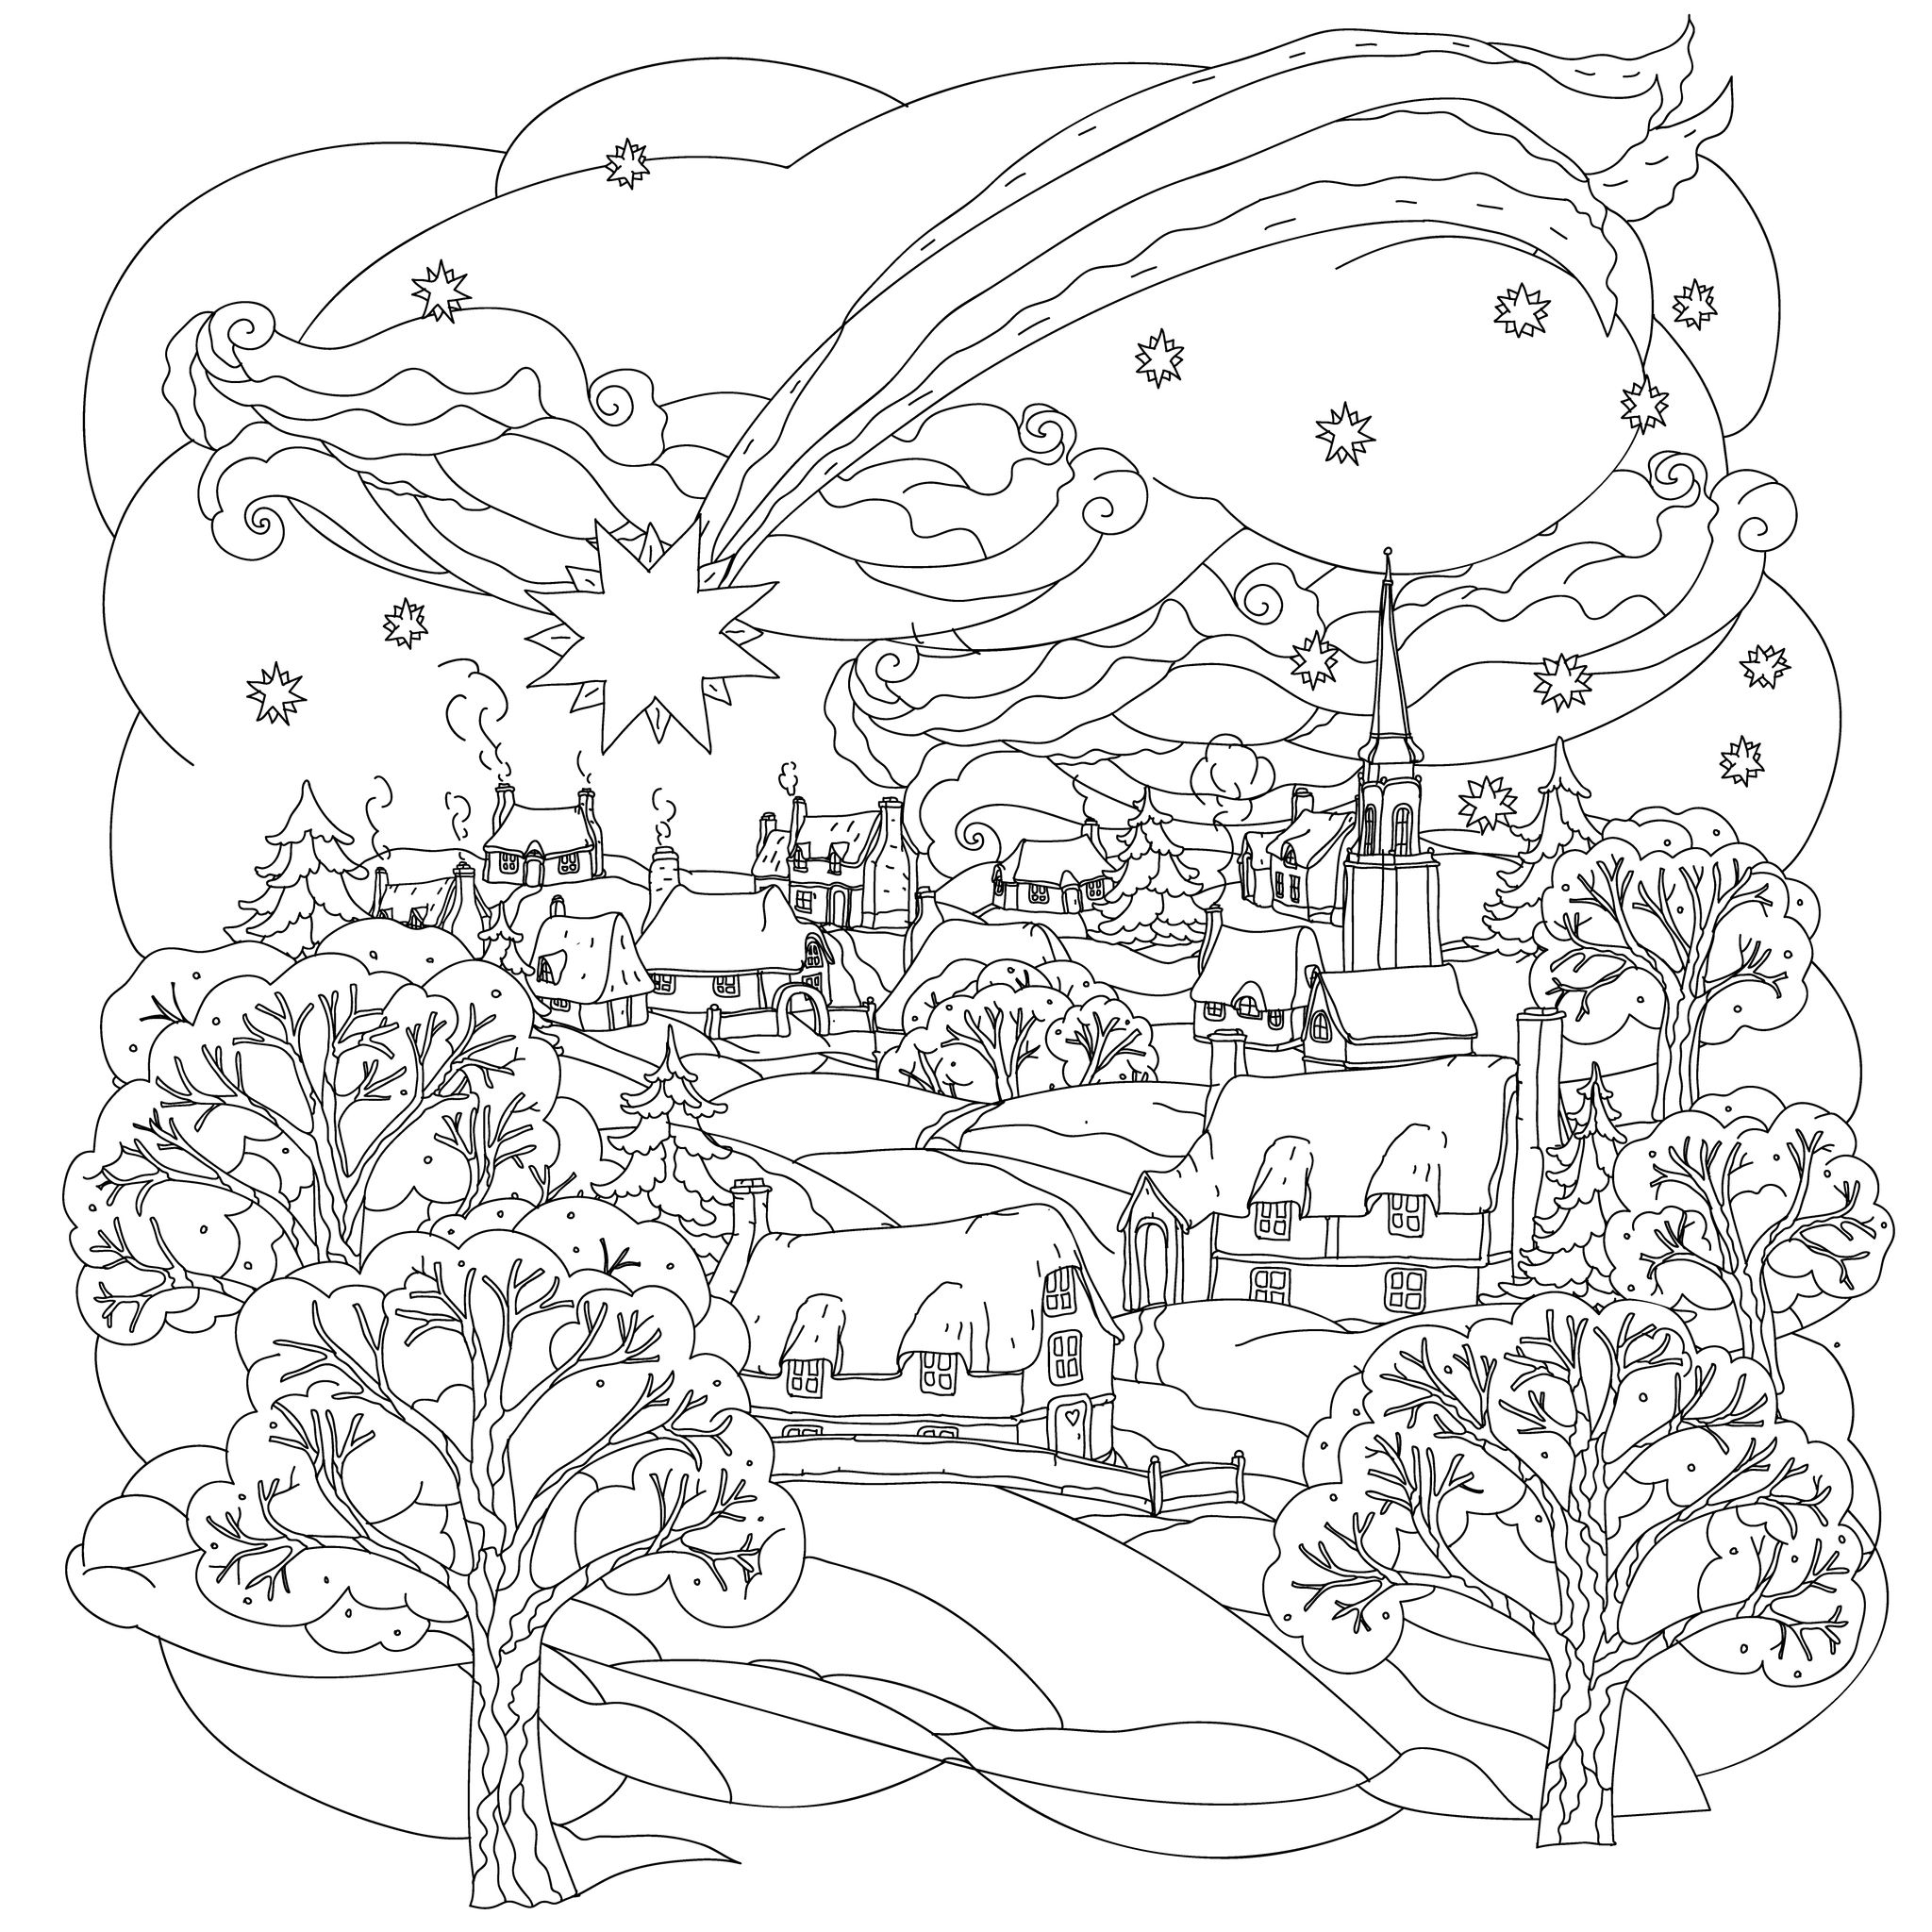 Coloring Pages Winter Coloring Pages For Adults winter coloring pages adults futpal com 1000 images about adult on pinterest thanksgiving